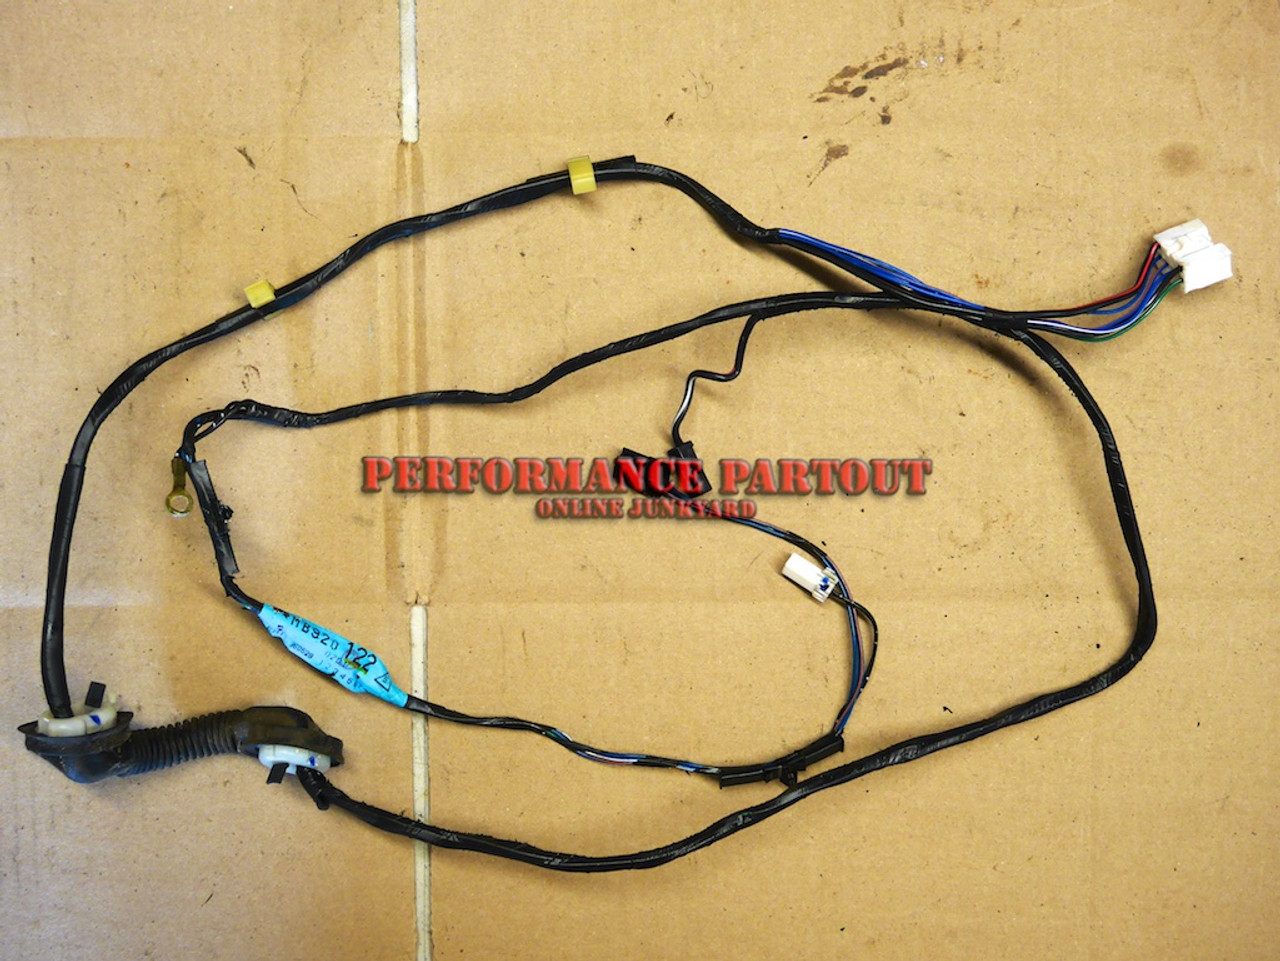 oxygen hatch wiring harness 2g dsm performance partout on safety harness nakamichi harness  [ 1024 x 769 Pixel ]